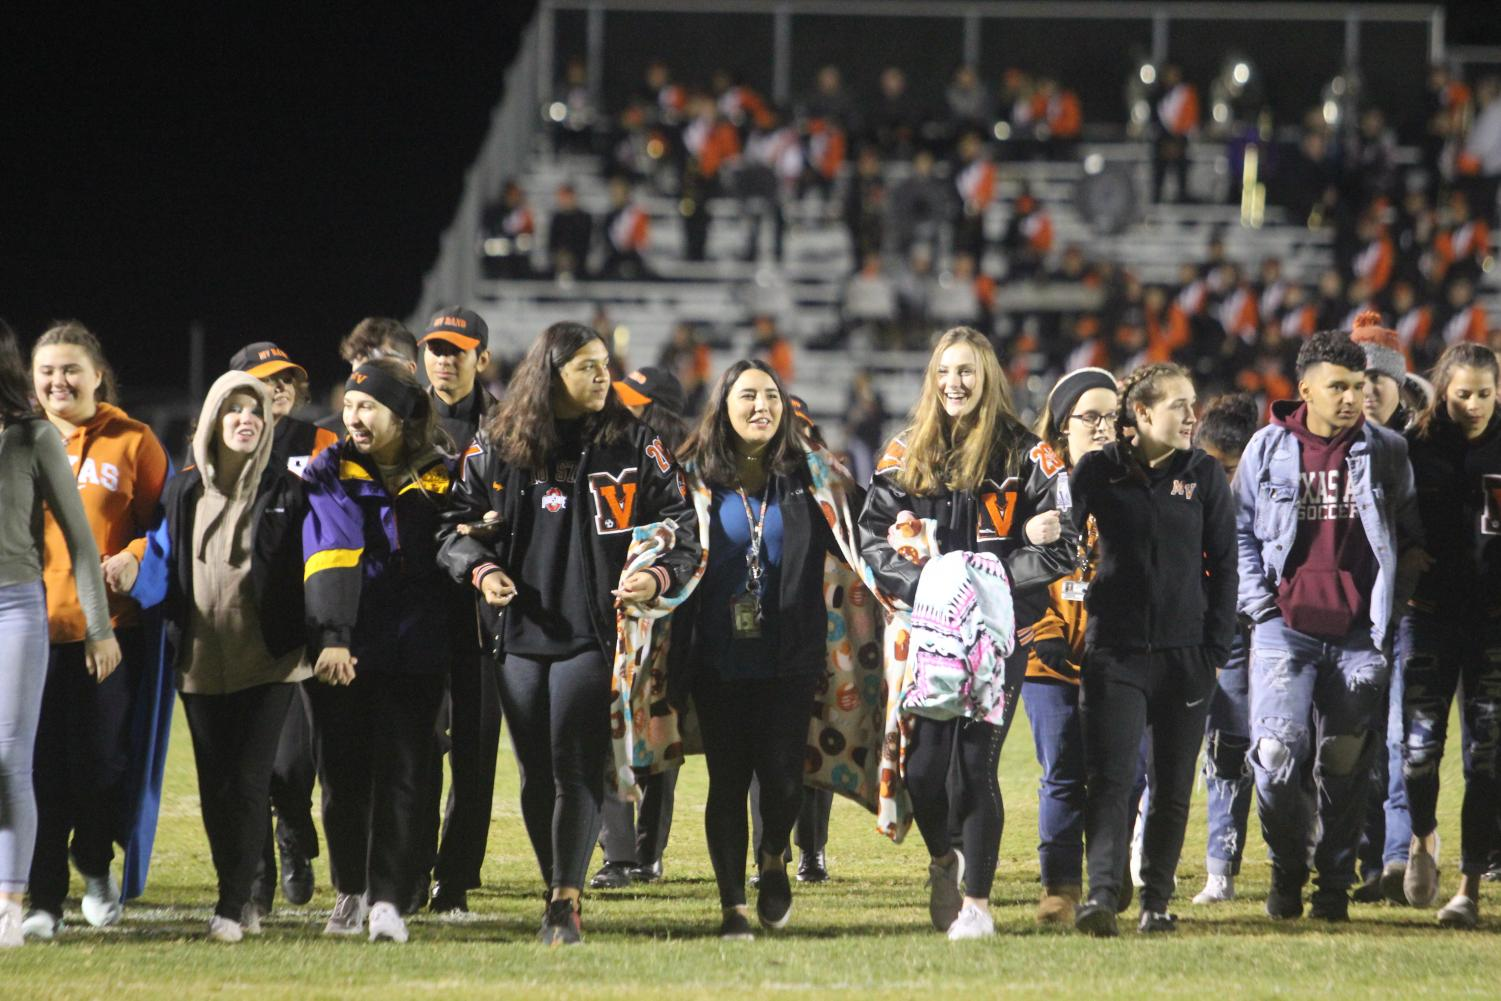 Seniors Link arms to walk the across the field